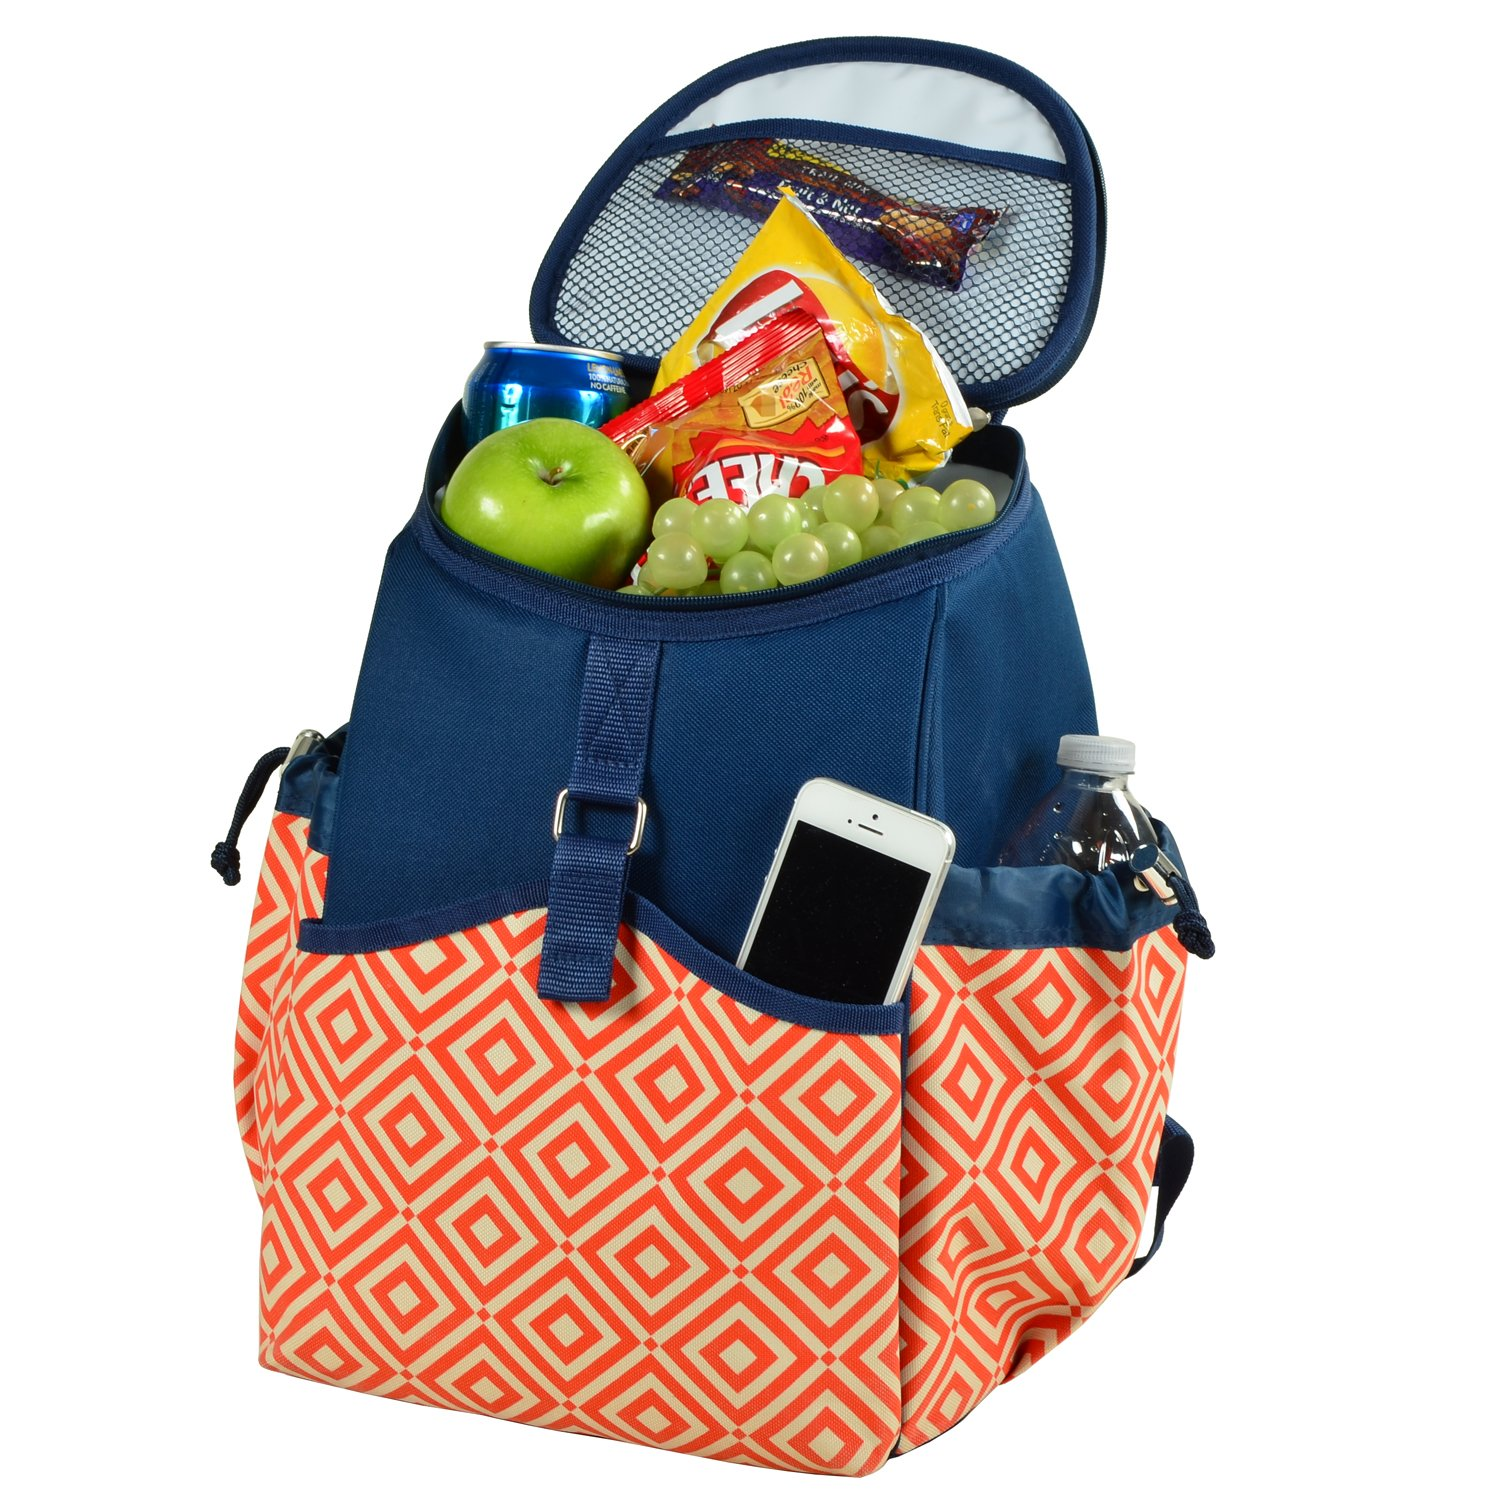 Picnic at Ascot Original Insulated Backpack Cooler- Designed Quality Approved in the USA